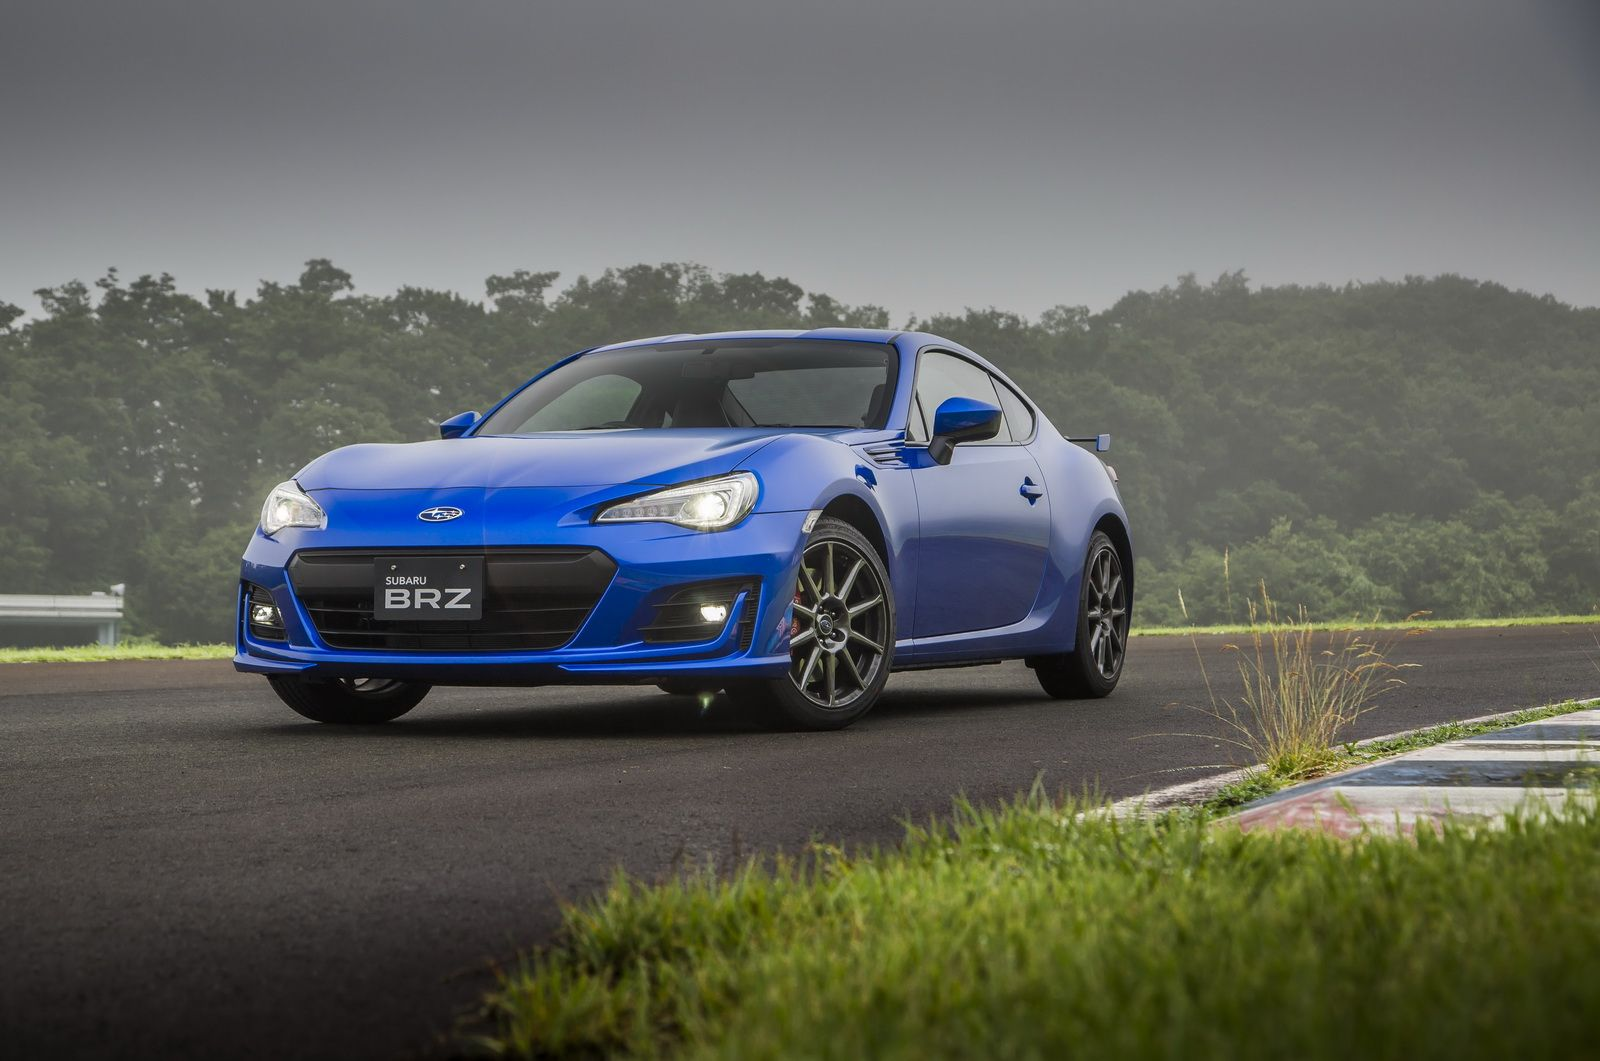 Take A Look At The 2017 Subaru BRZ With New Image Gallery